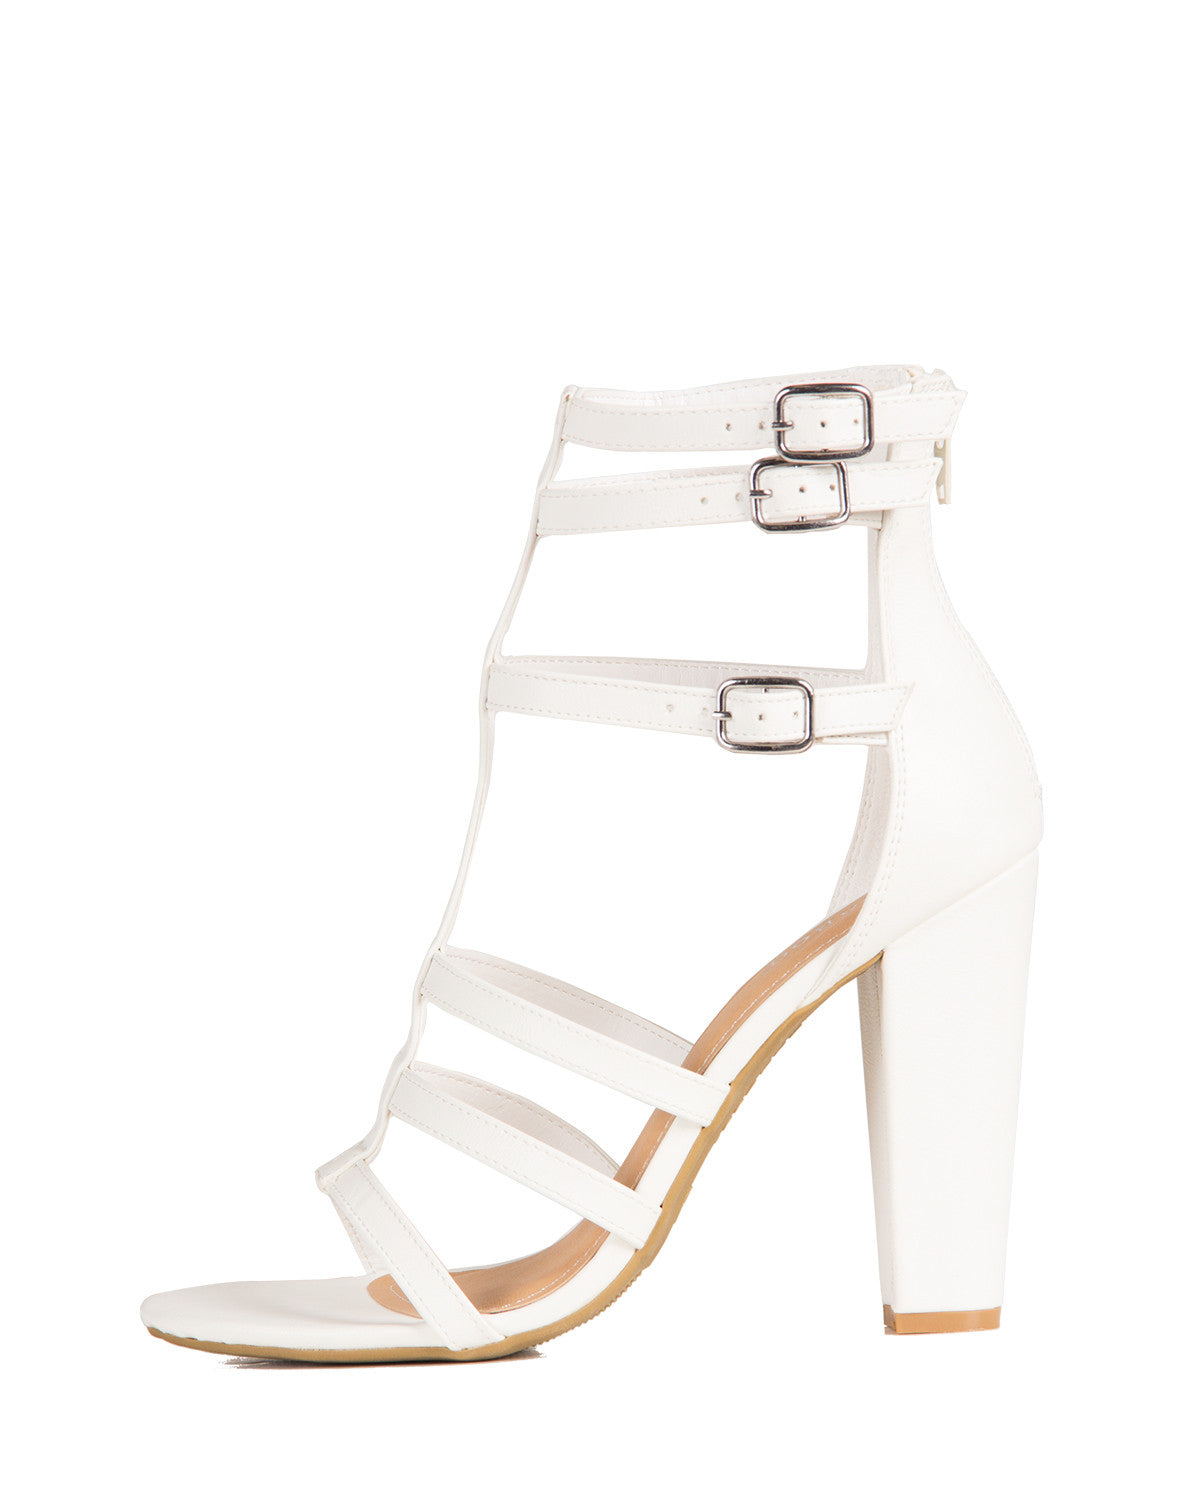 Buckled Up Sandal Heels